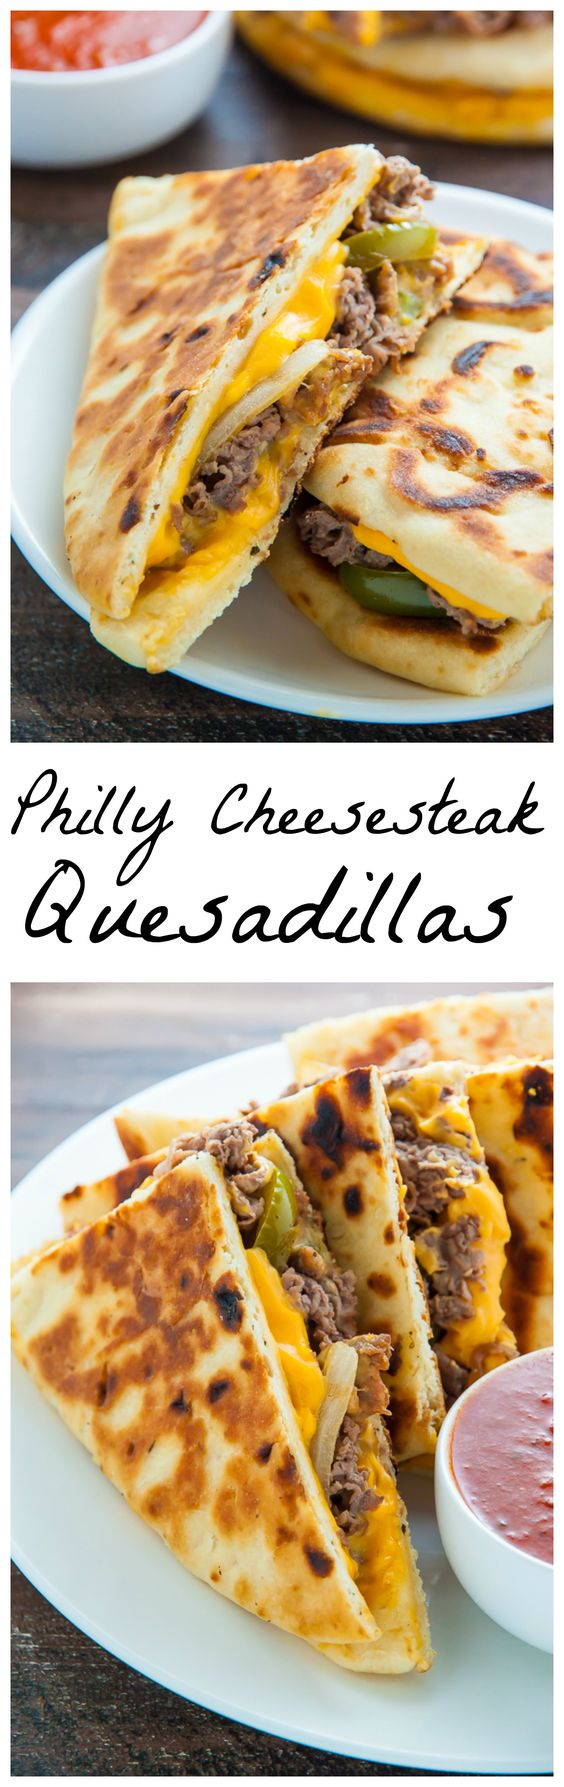 Philly Cheesesteak Quesadillas are loaded with meat, cheese, pepper, and onions! Serve with marinara sauce, ketchup, or sour cream.: